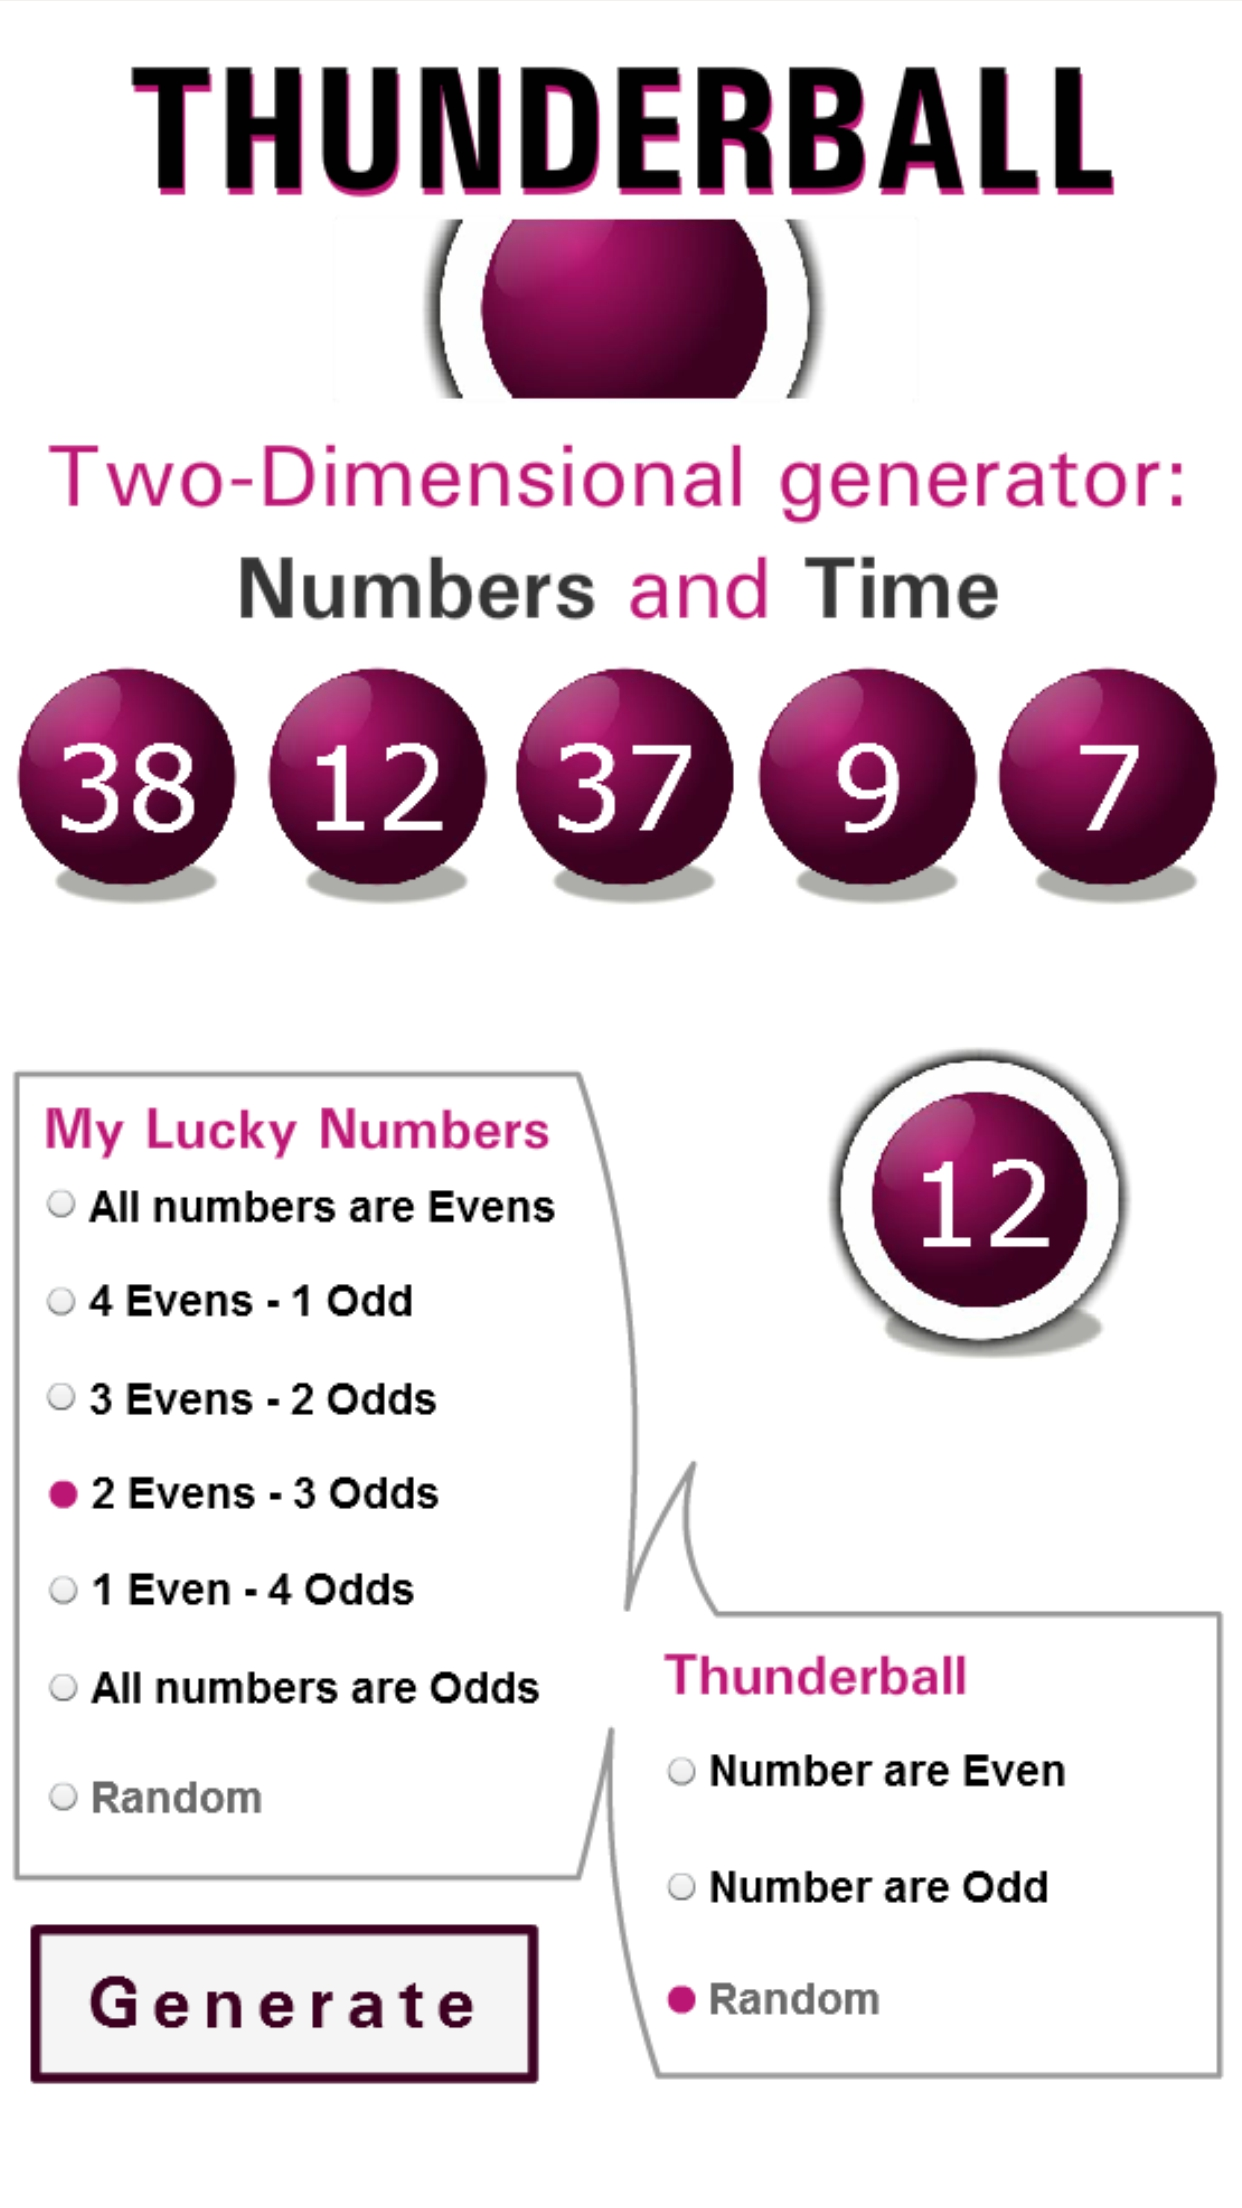 Thunderball |The National Lottery| Results, Tips, Winning Numbers